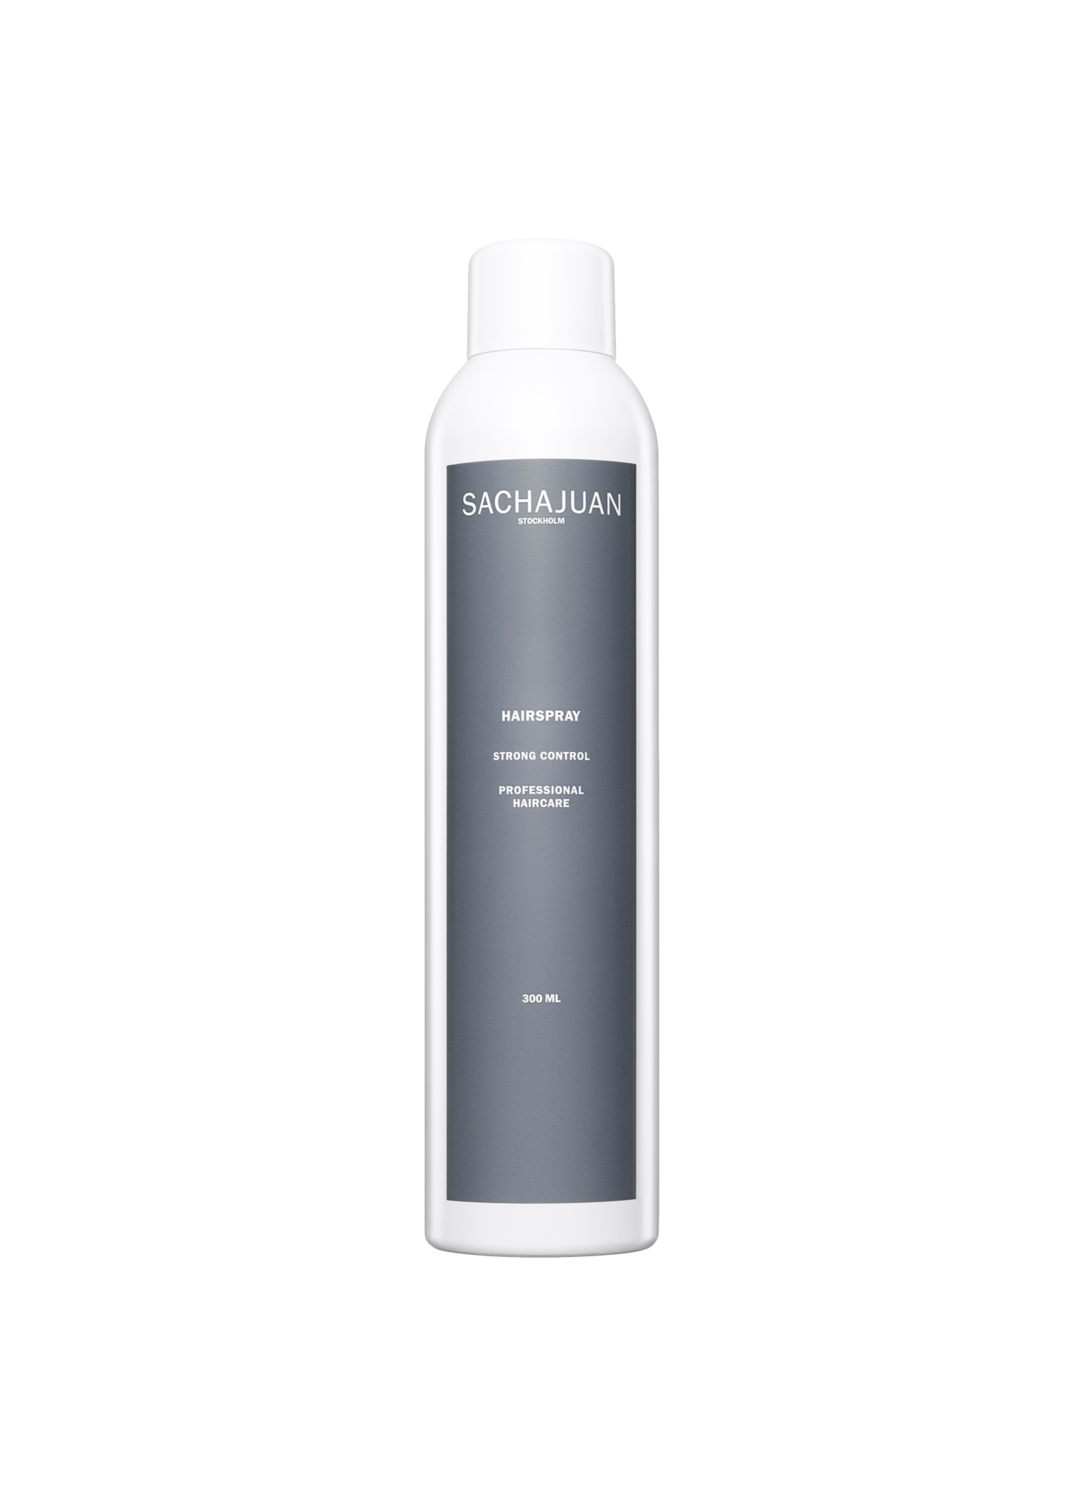 sachajuan | hair spray - strong control[product_type ]sachajuan - Kiss and Makeup